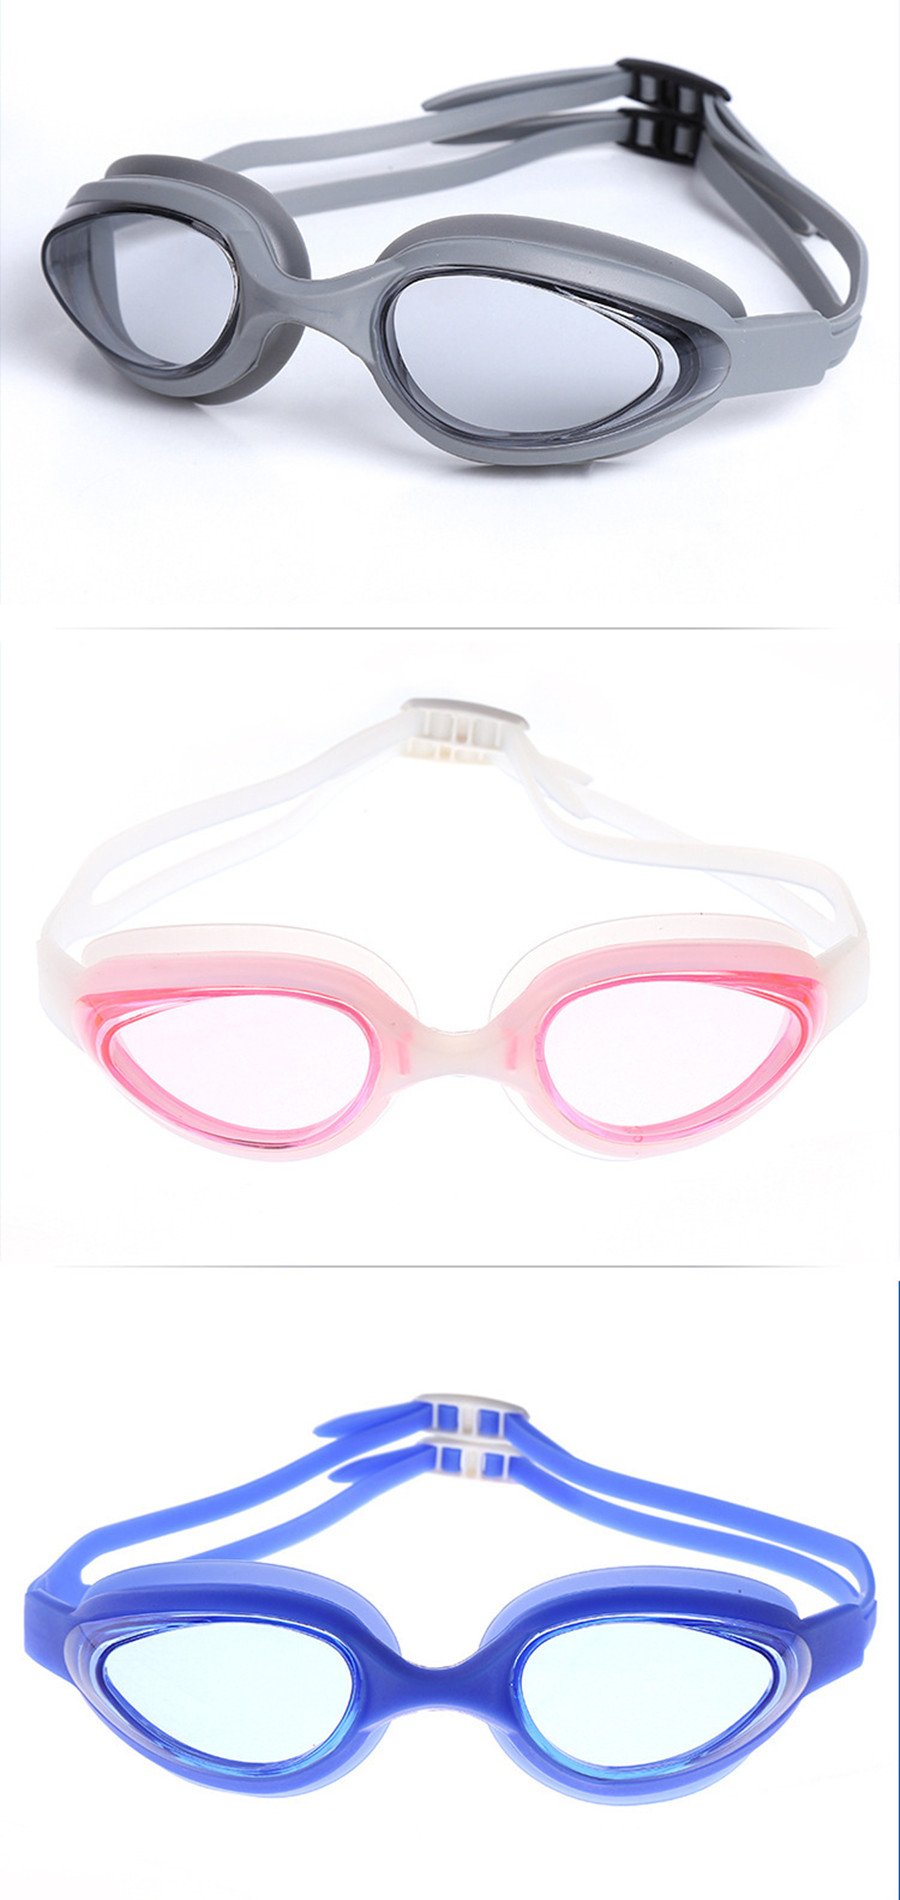 77abb762bd6 TOP 20 Valuable And Hot Swimming Goggles We Sourced In China